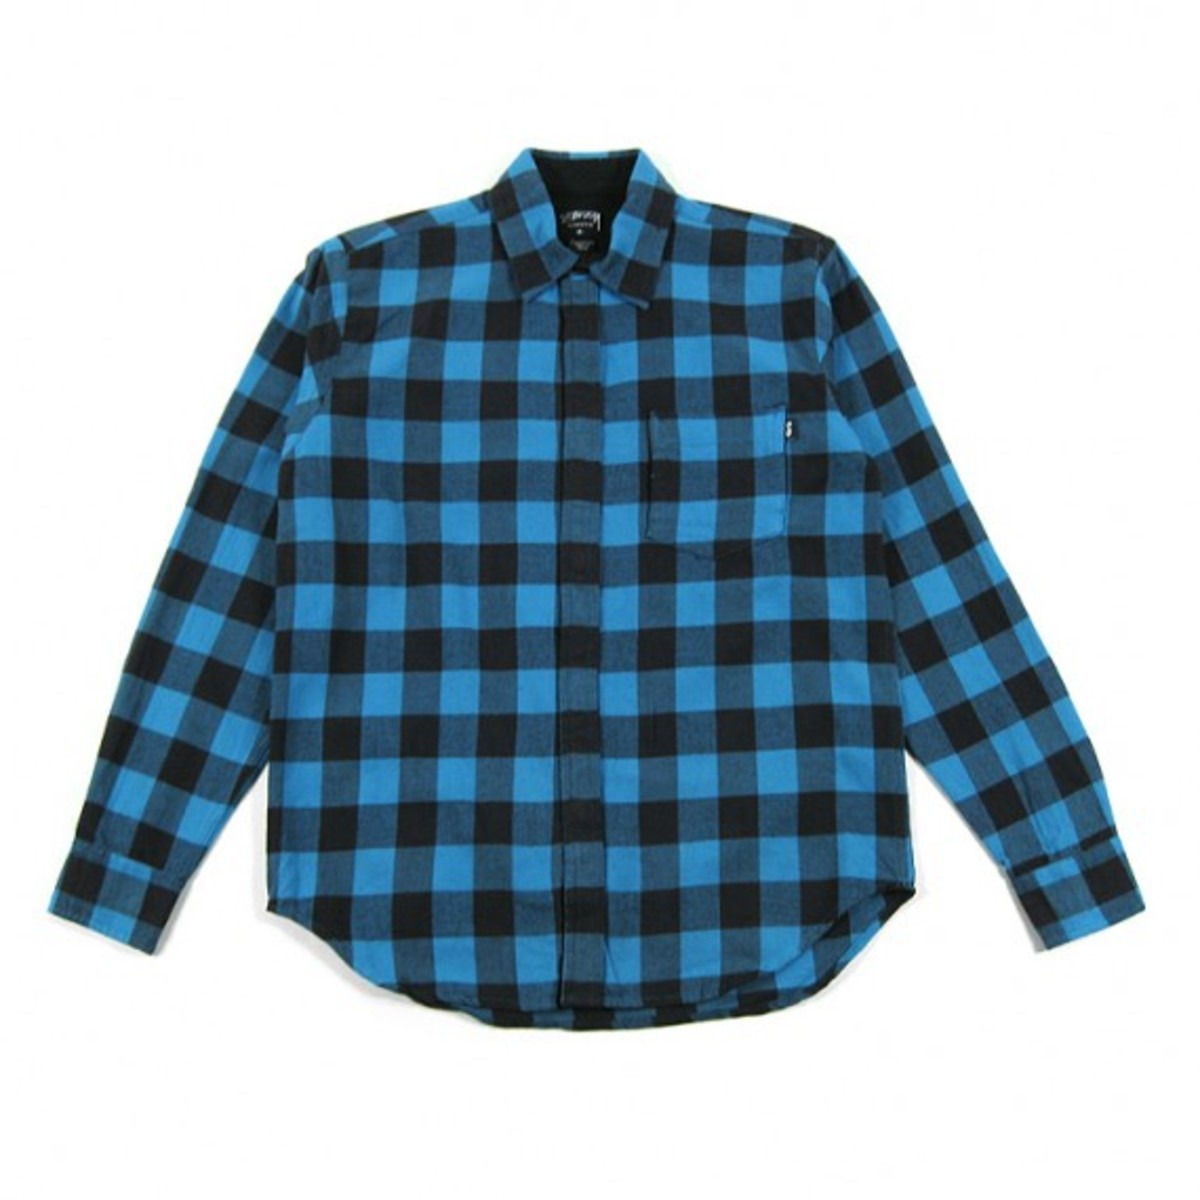 stussy-fall-2009-flannel-shirts-6